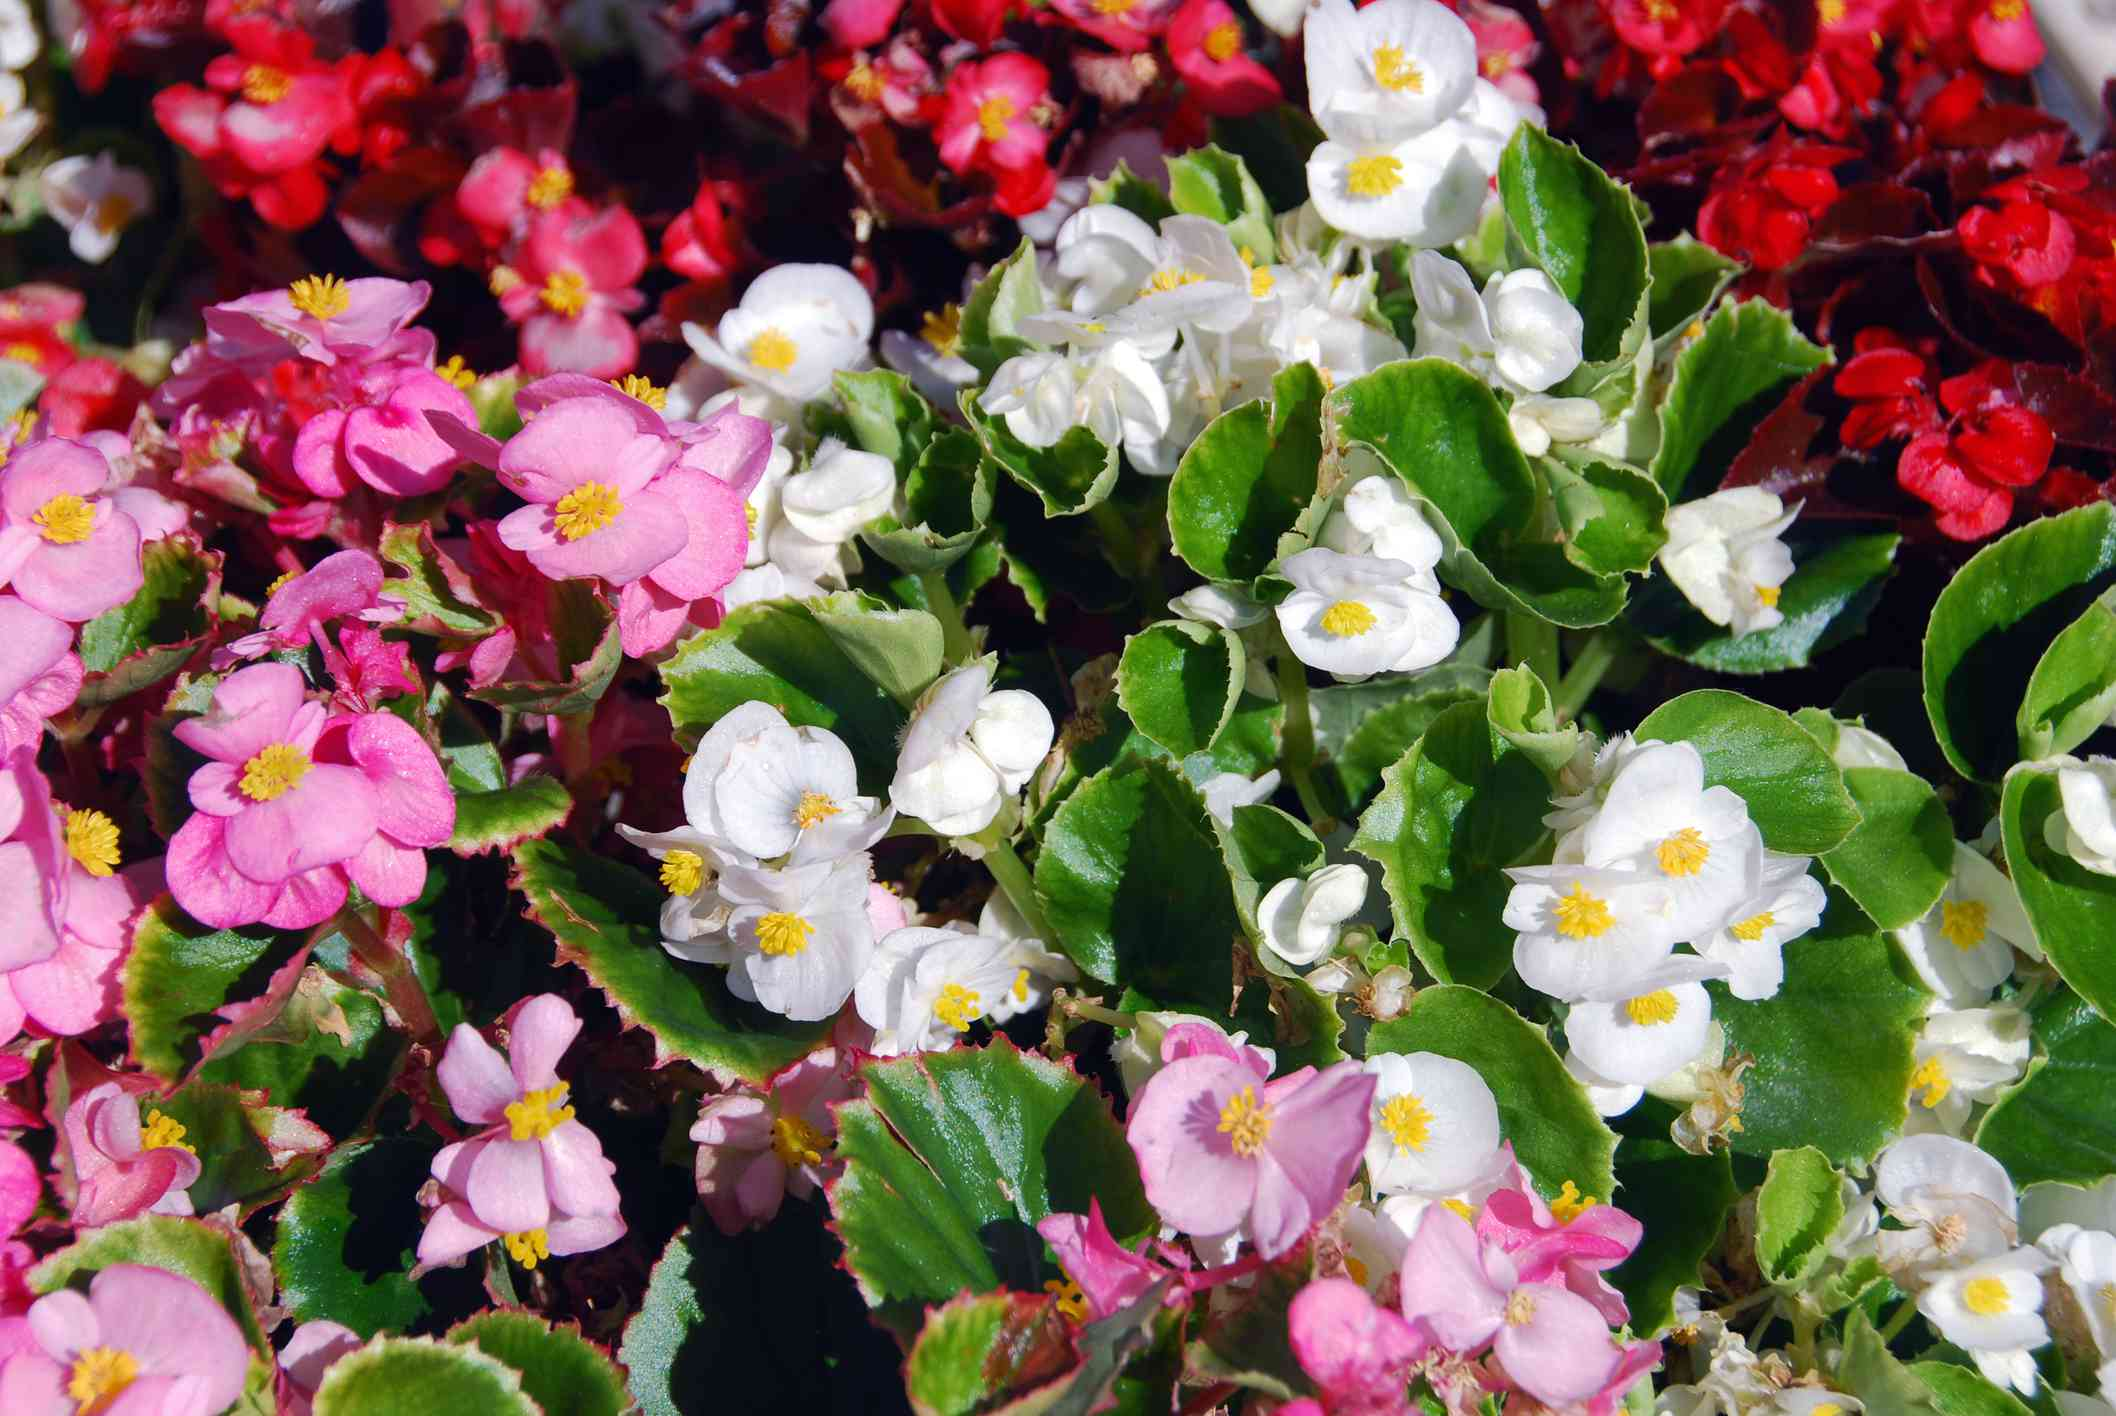 Wax begonia with pink, white, and red blossoms